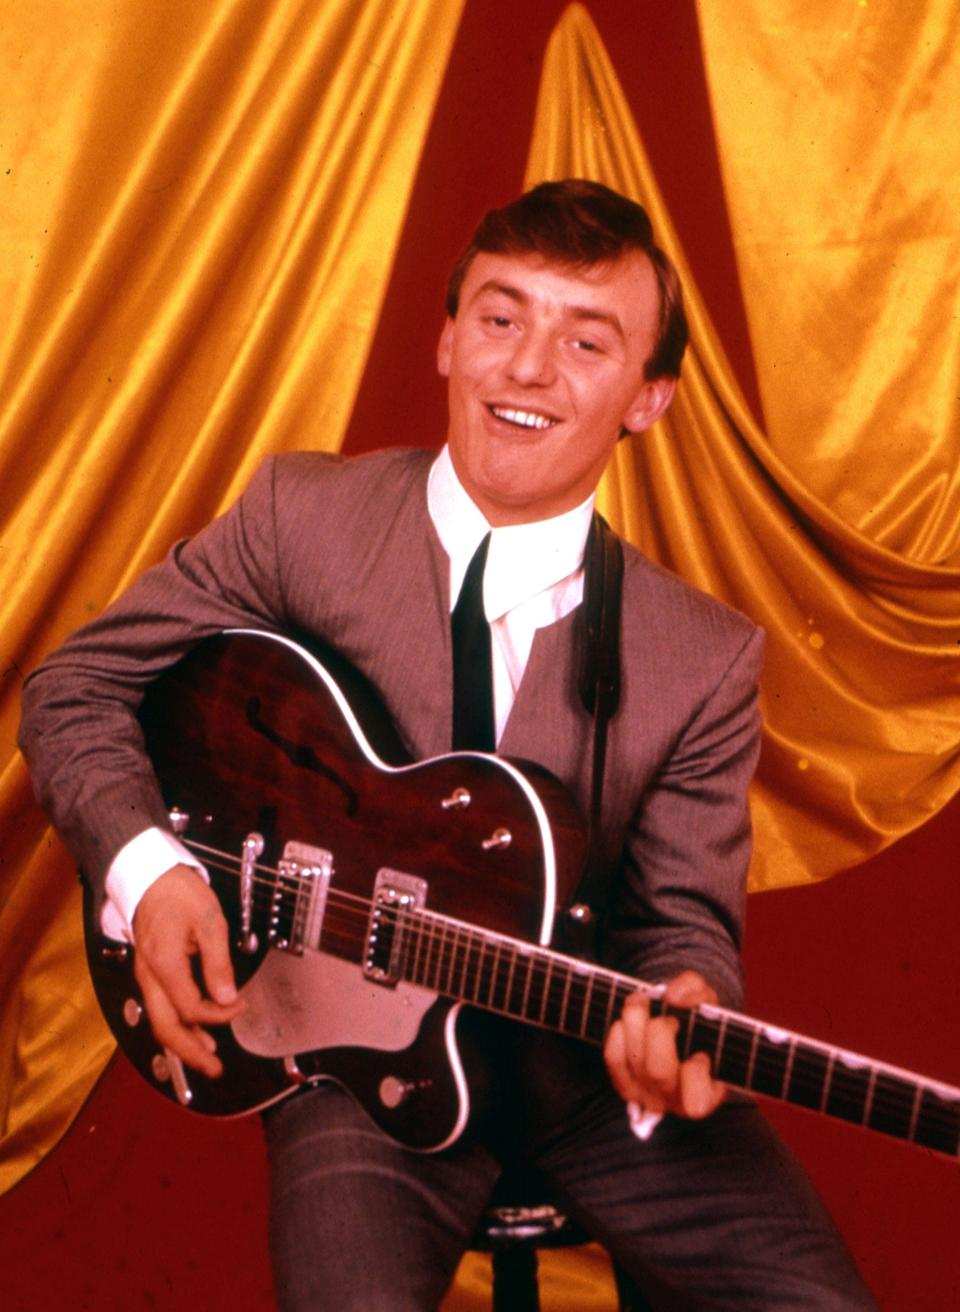 In 1963, the year he and the band topped the charts three times and toured the UK with Roy Orbison and the Beatles - Alamy